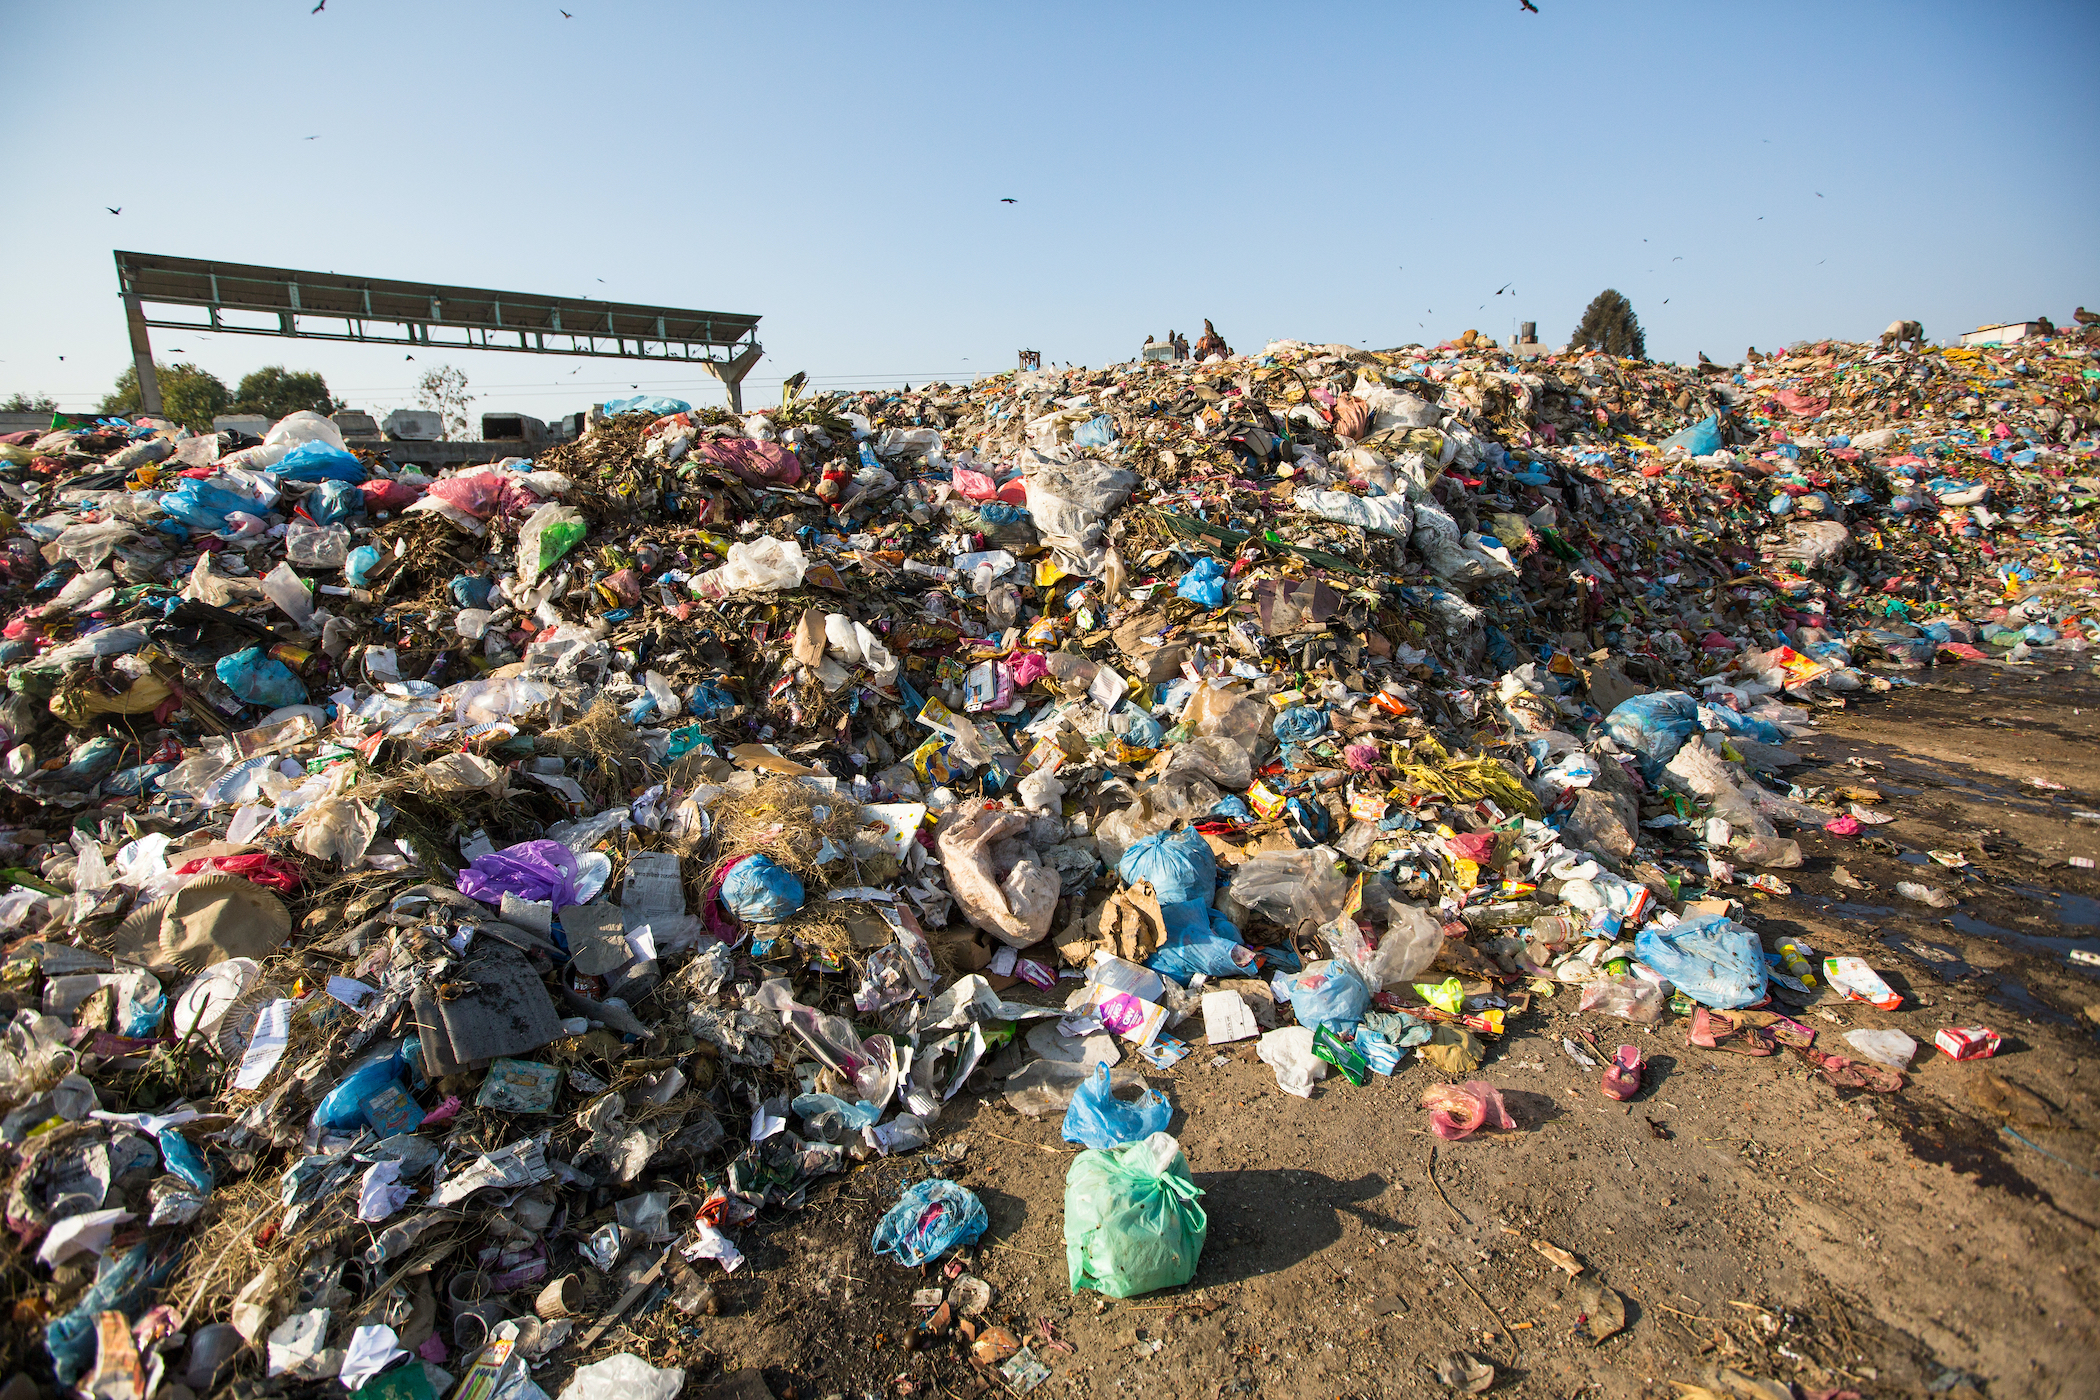 Food in a landfill